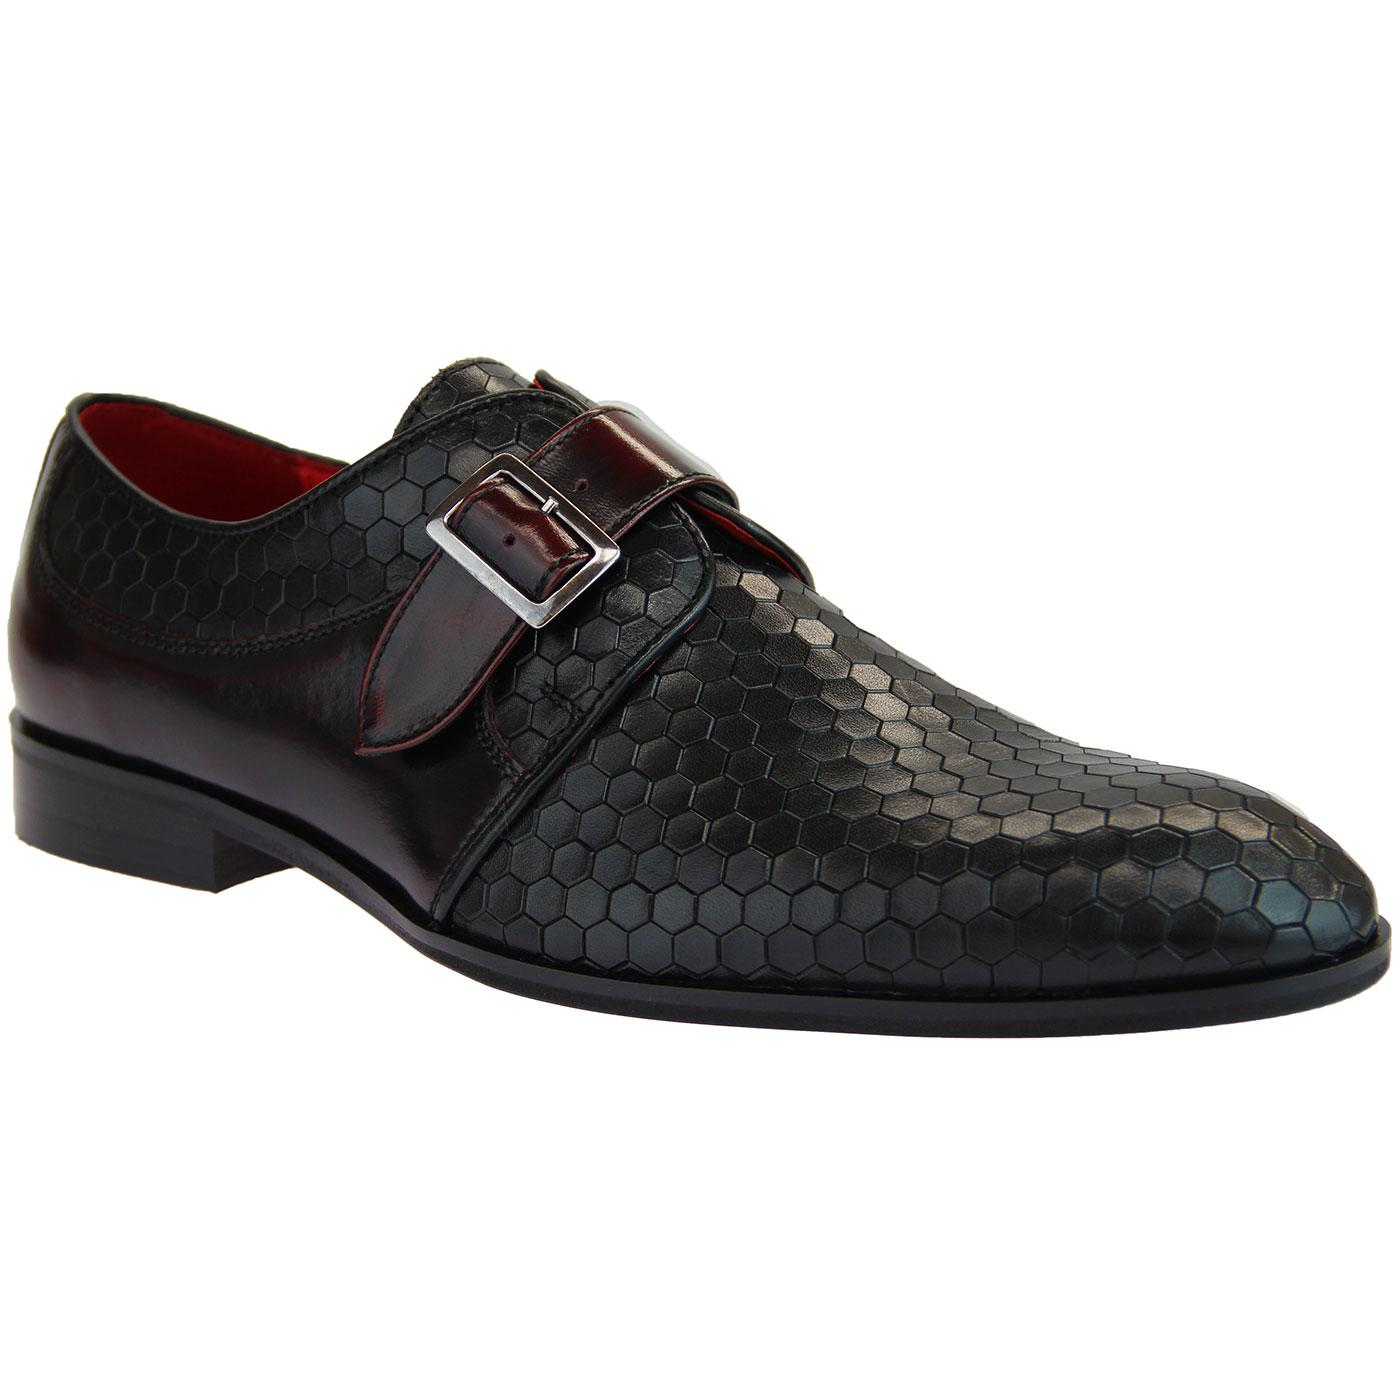 LACUZZO Mod Honeycomb Leather Monk Strap Loafers B